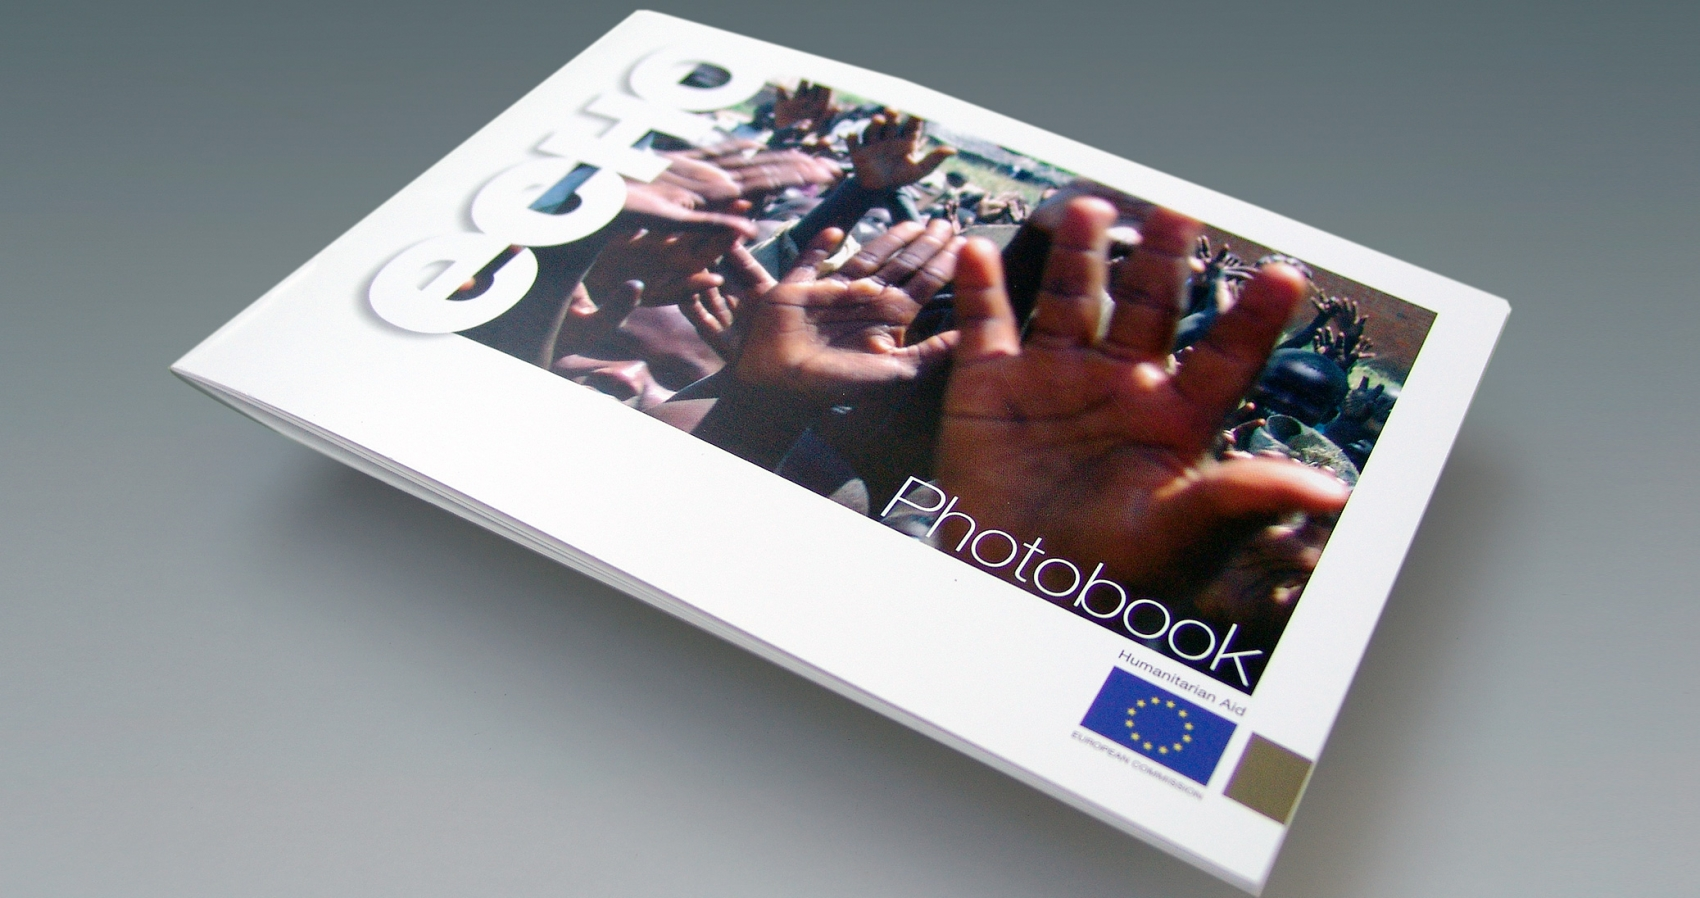 European Commission - Photobook